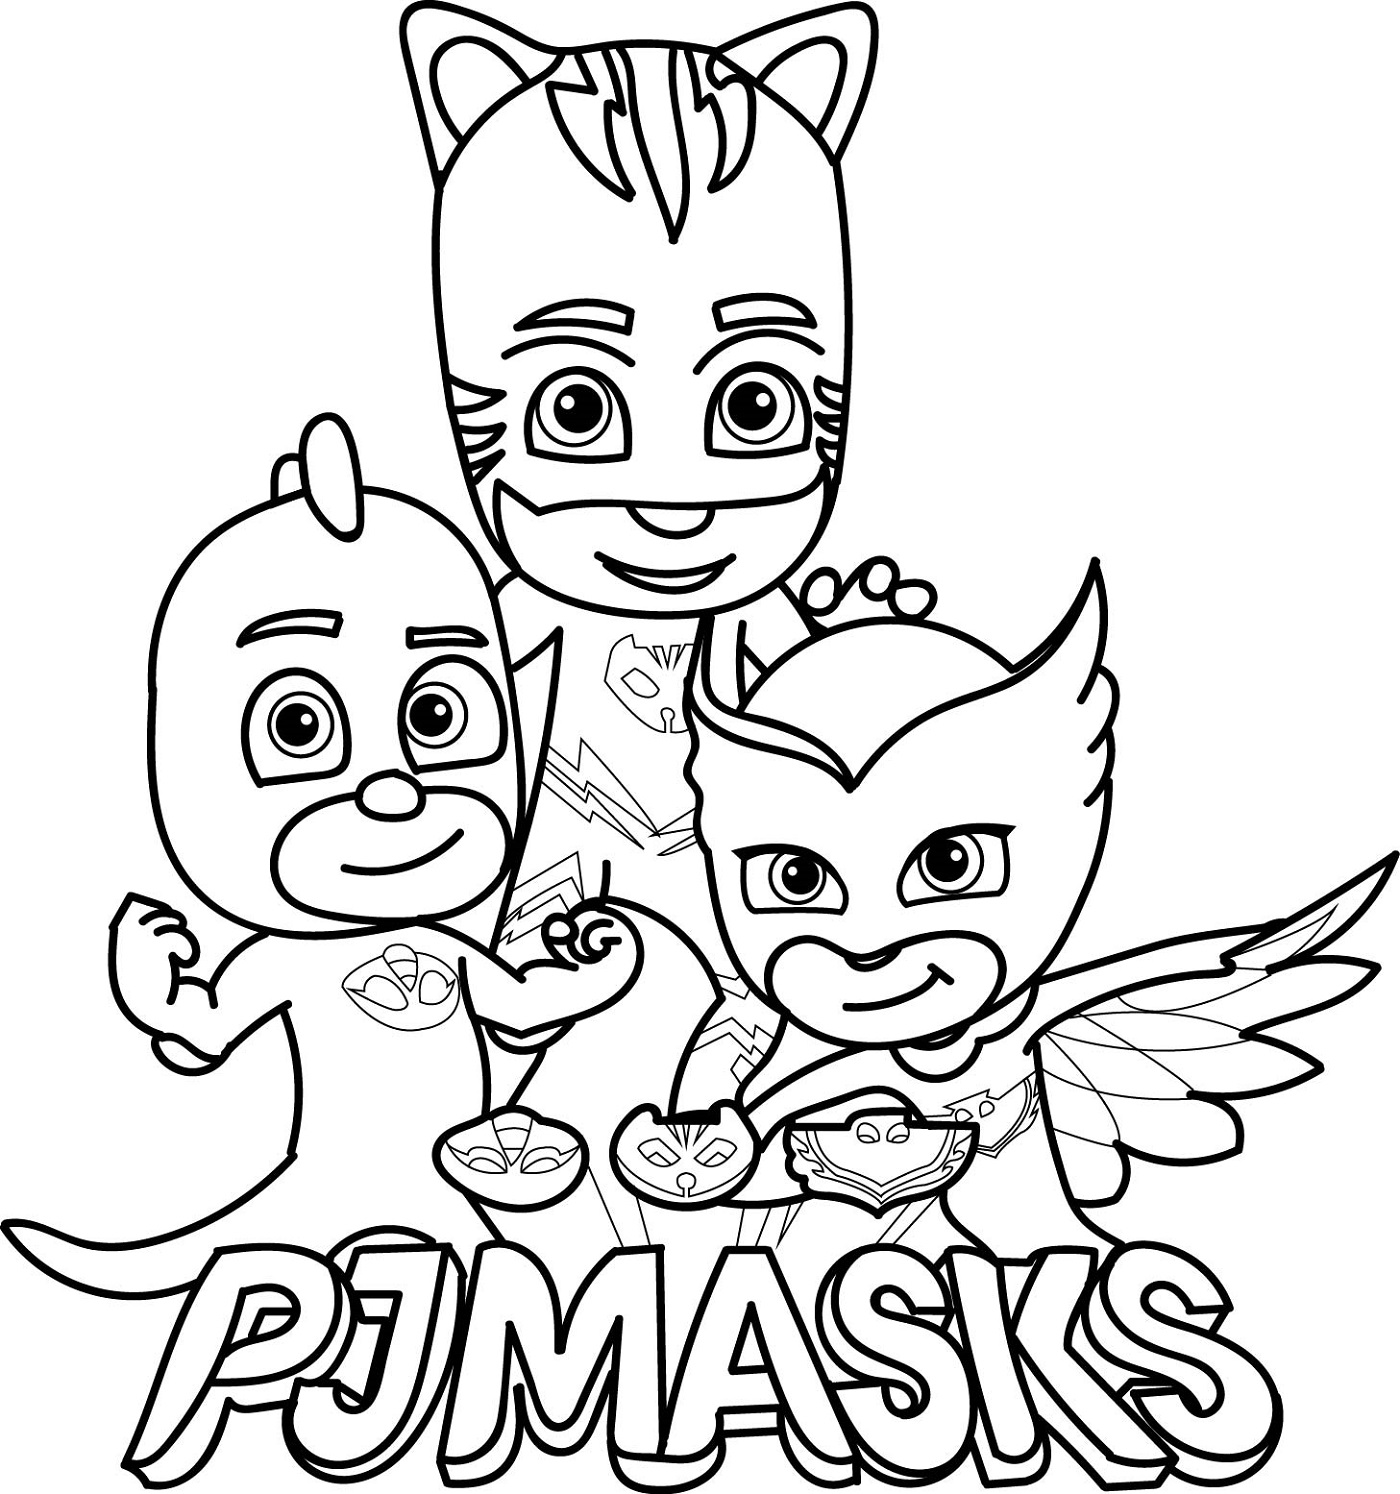 pj masks coloring 1